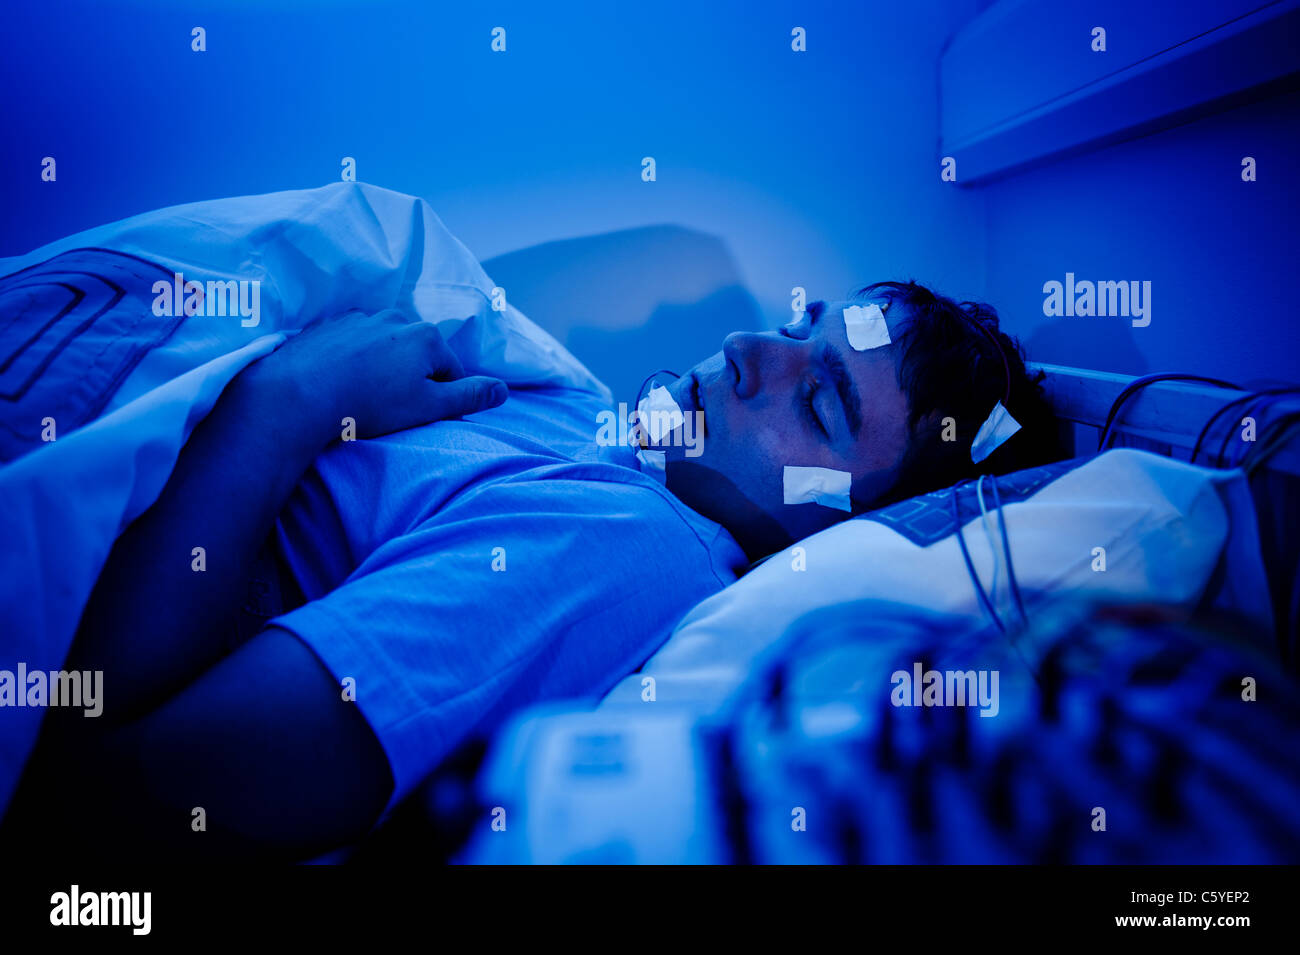 sleep lab EEG monitoring machine equipment and wires and electrodes with subject in background blue lighting - Stock Image